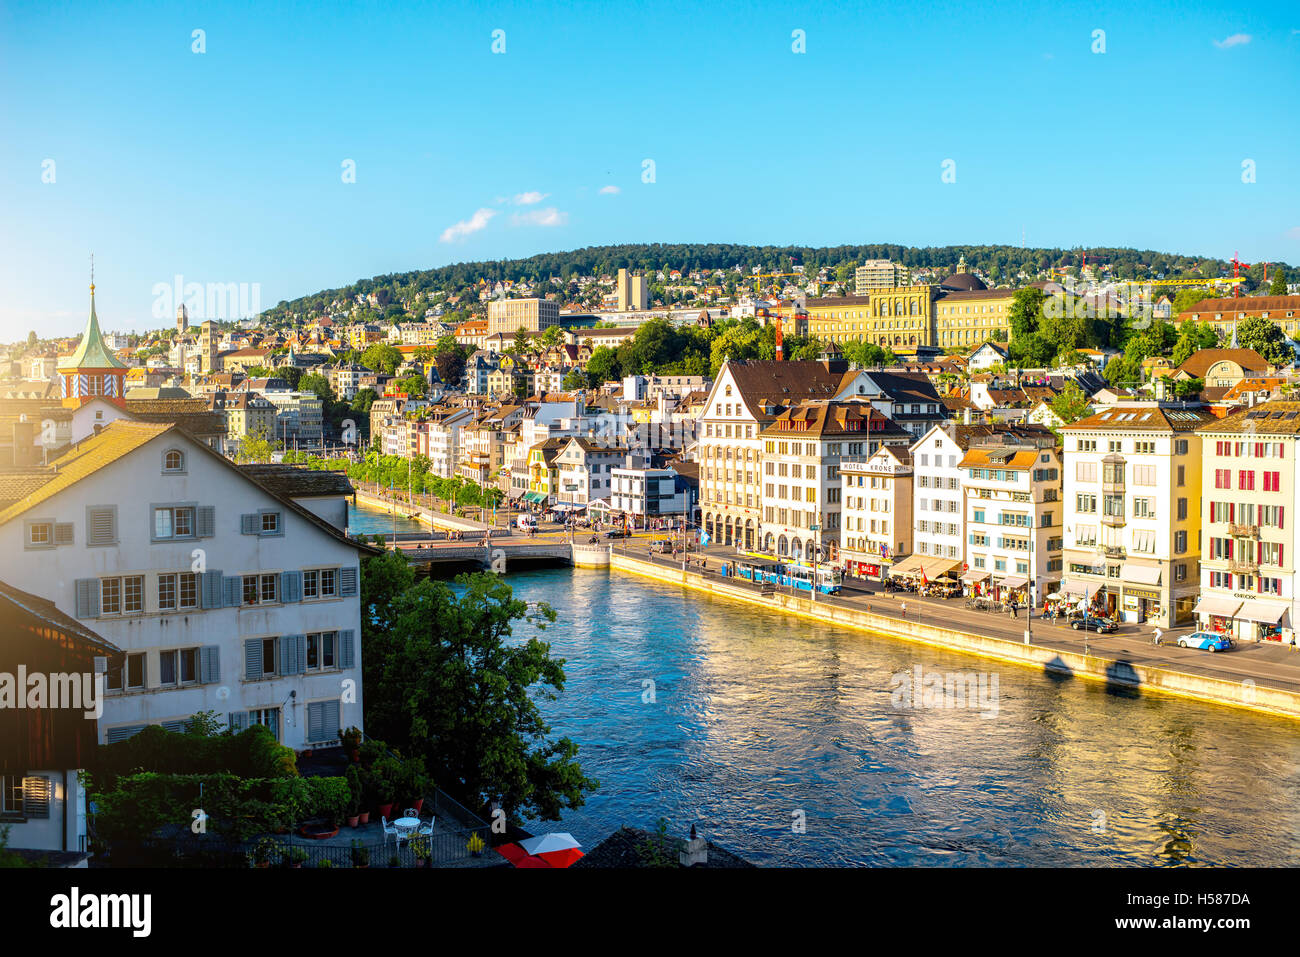 Zurich city in Switzerland Stock Photo